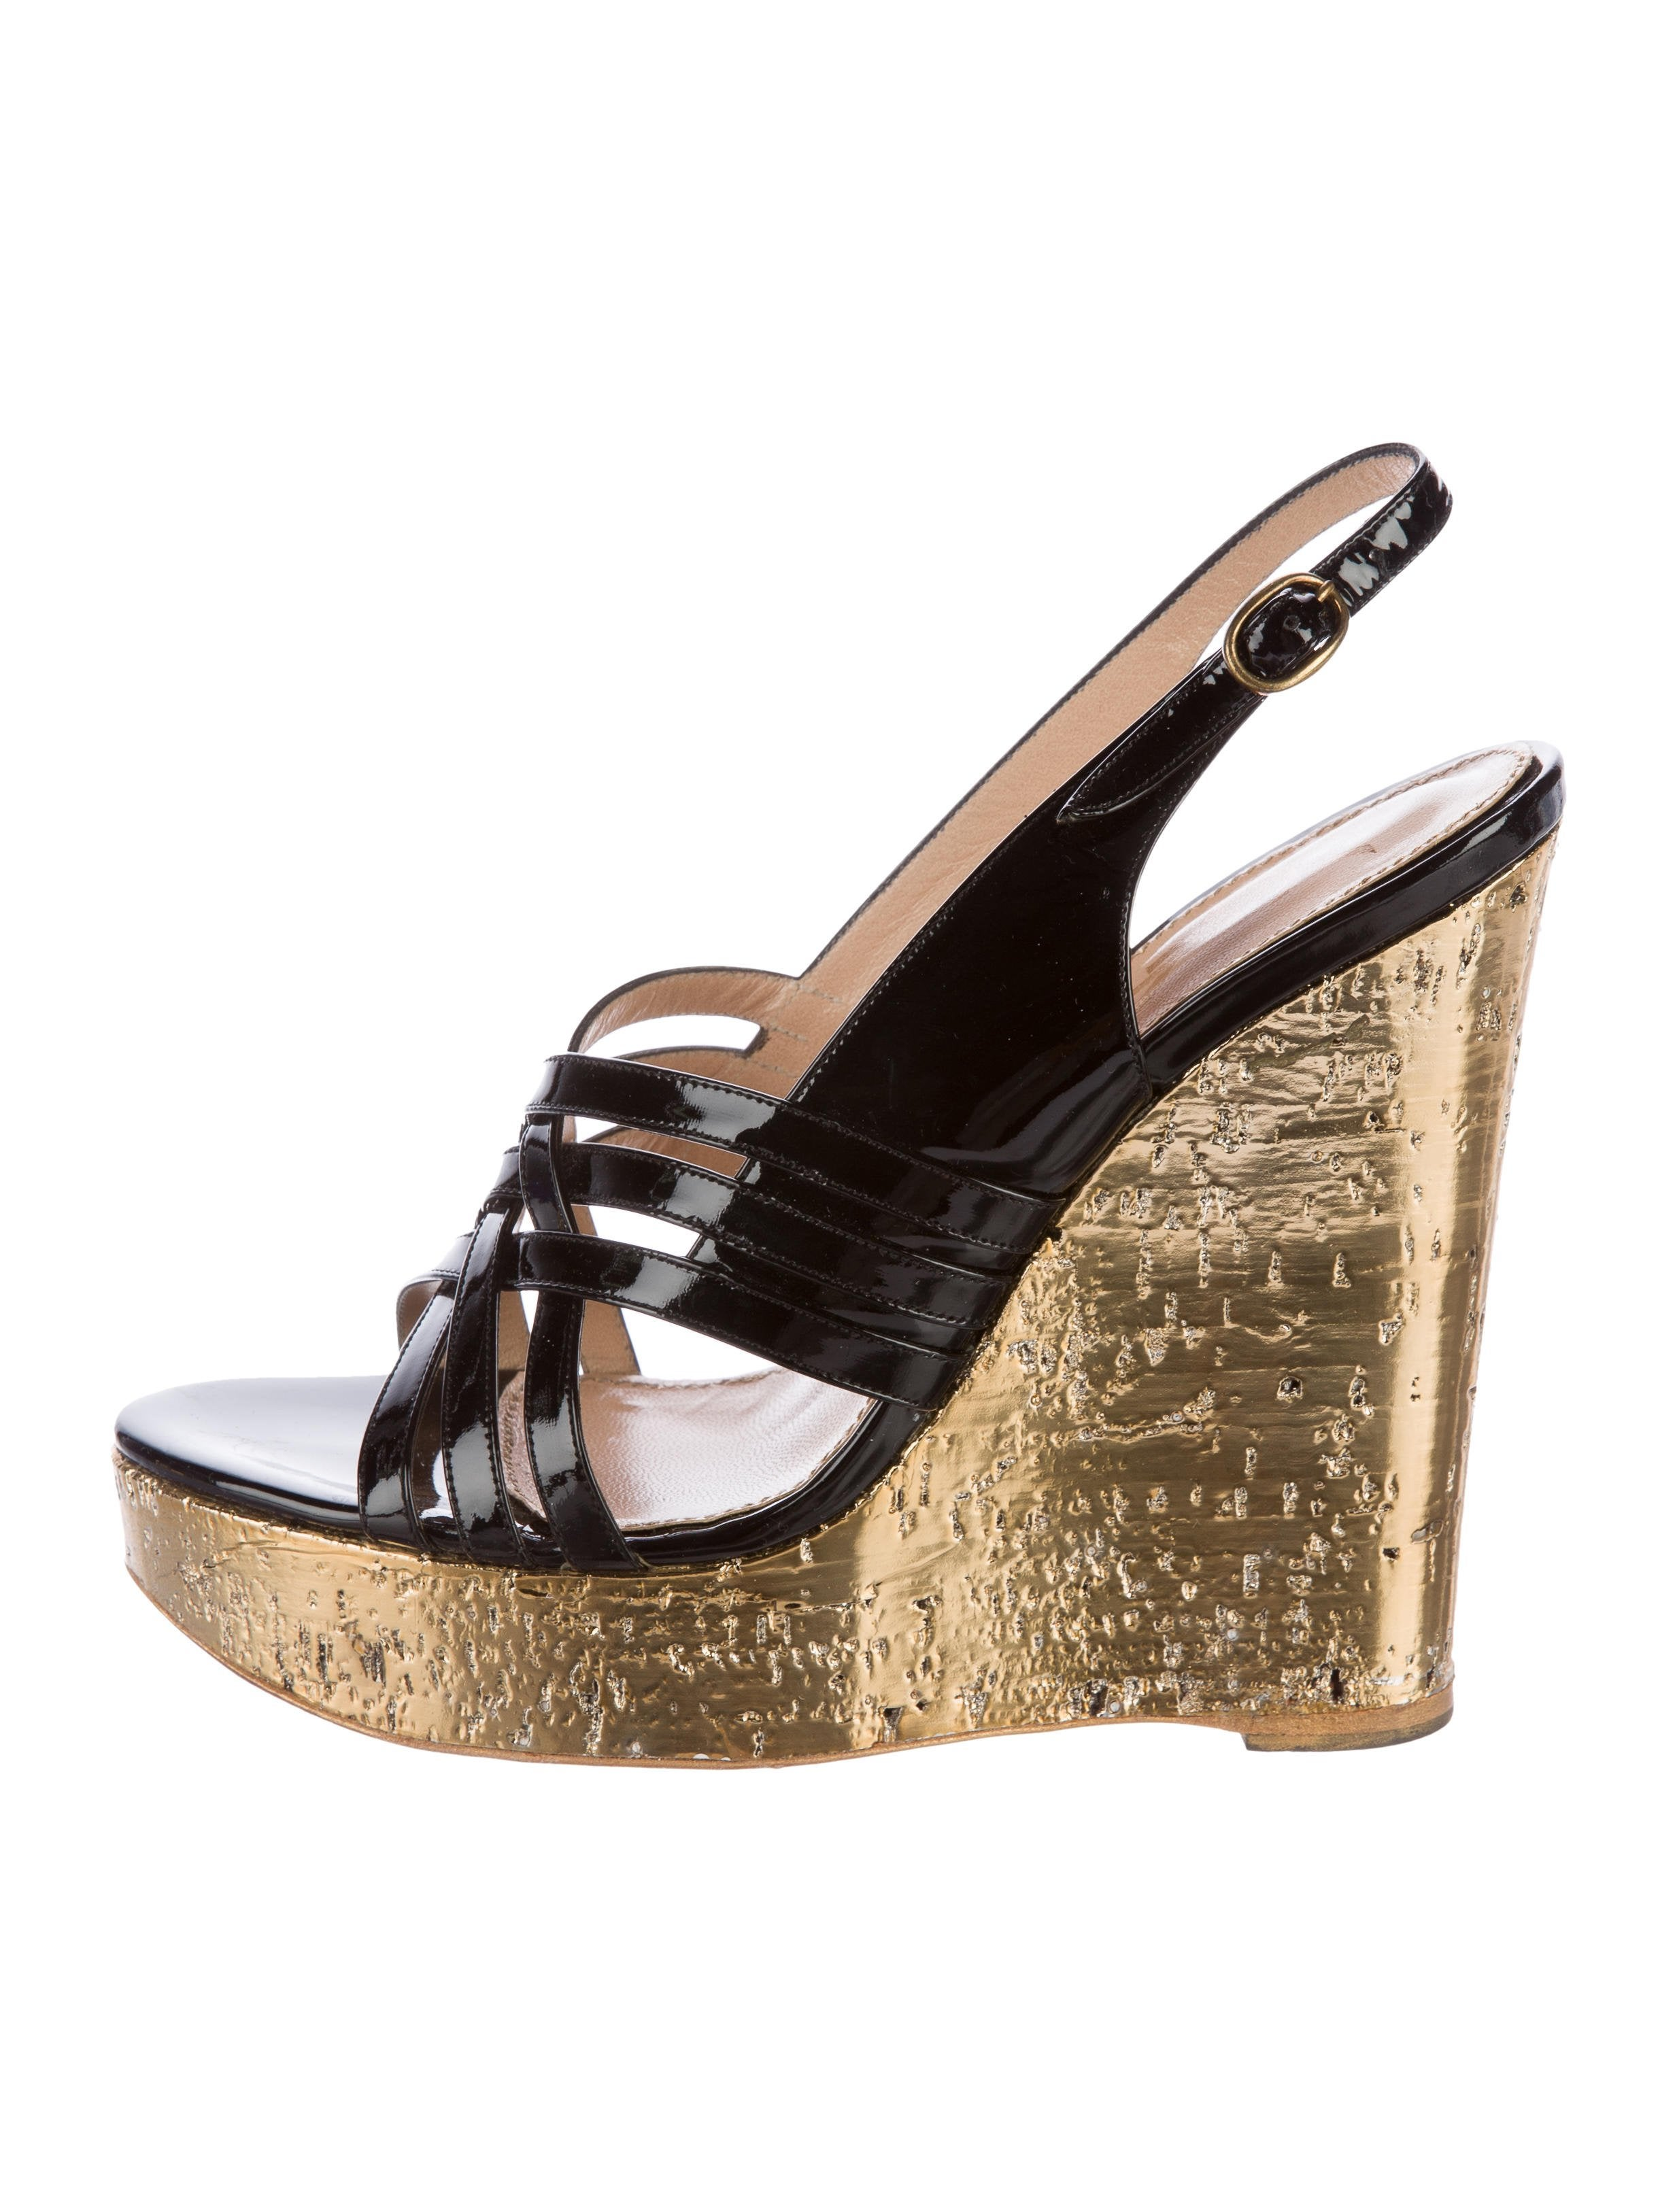 Yves Saint Laurent Patent Leather Wedge Sandals